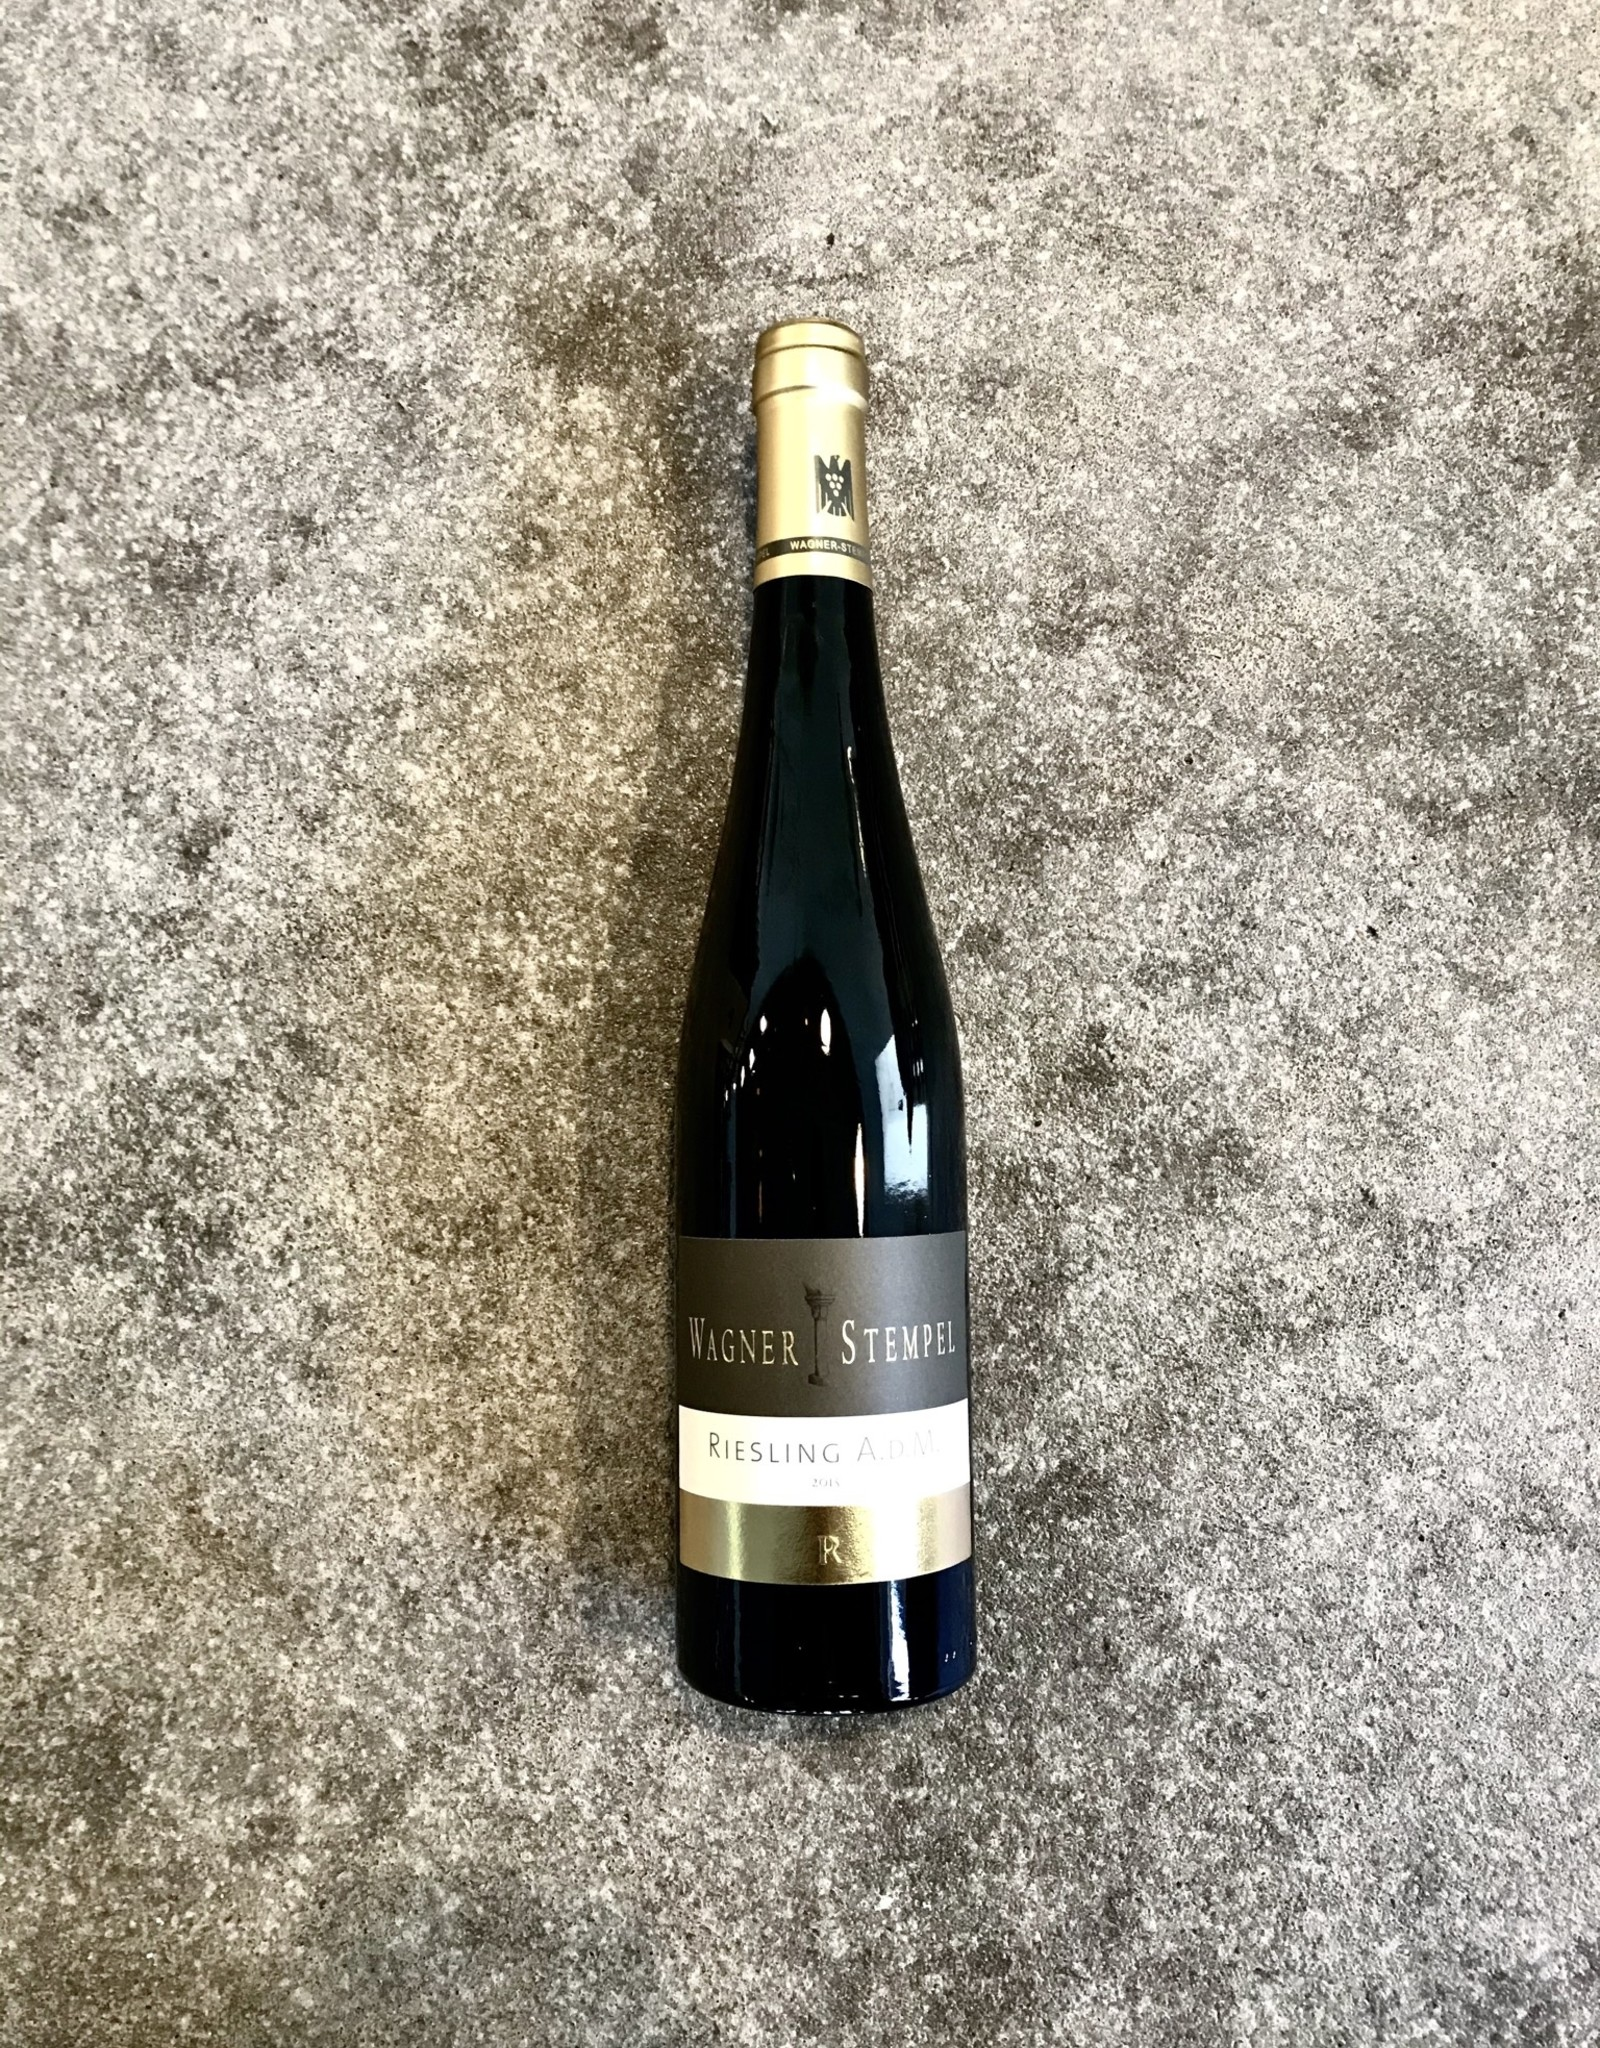 Wagner-Stempel Riesling ADM 2015